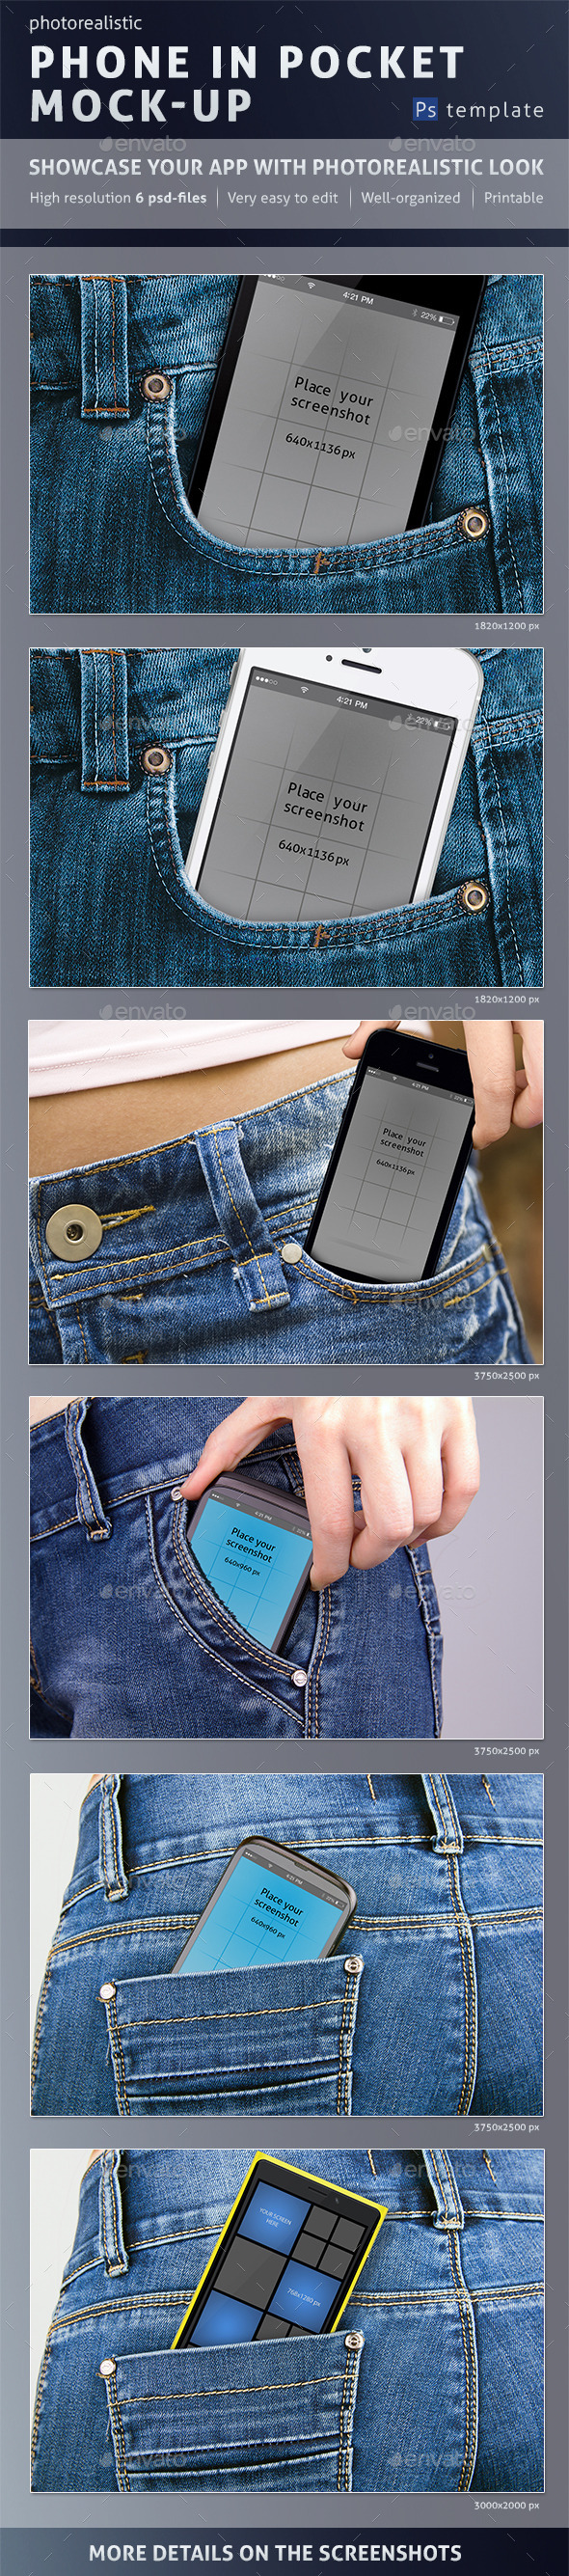 Photorealistic Phone in Pocket Mock-up